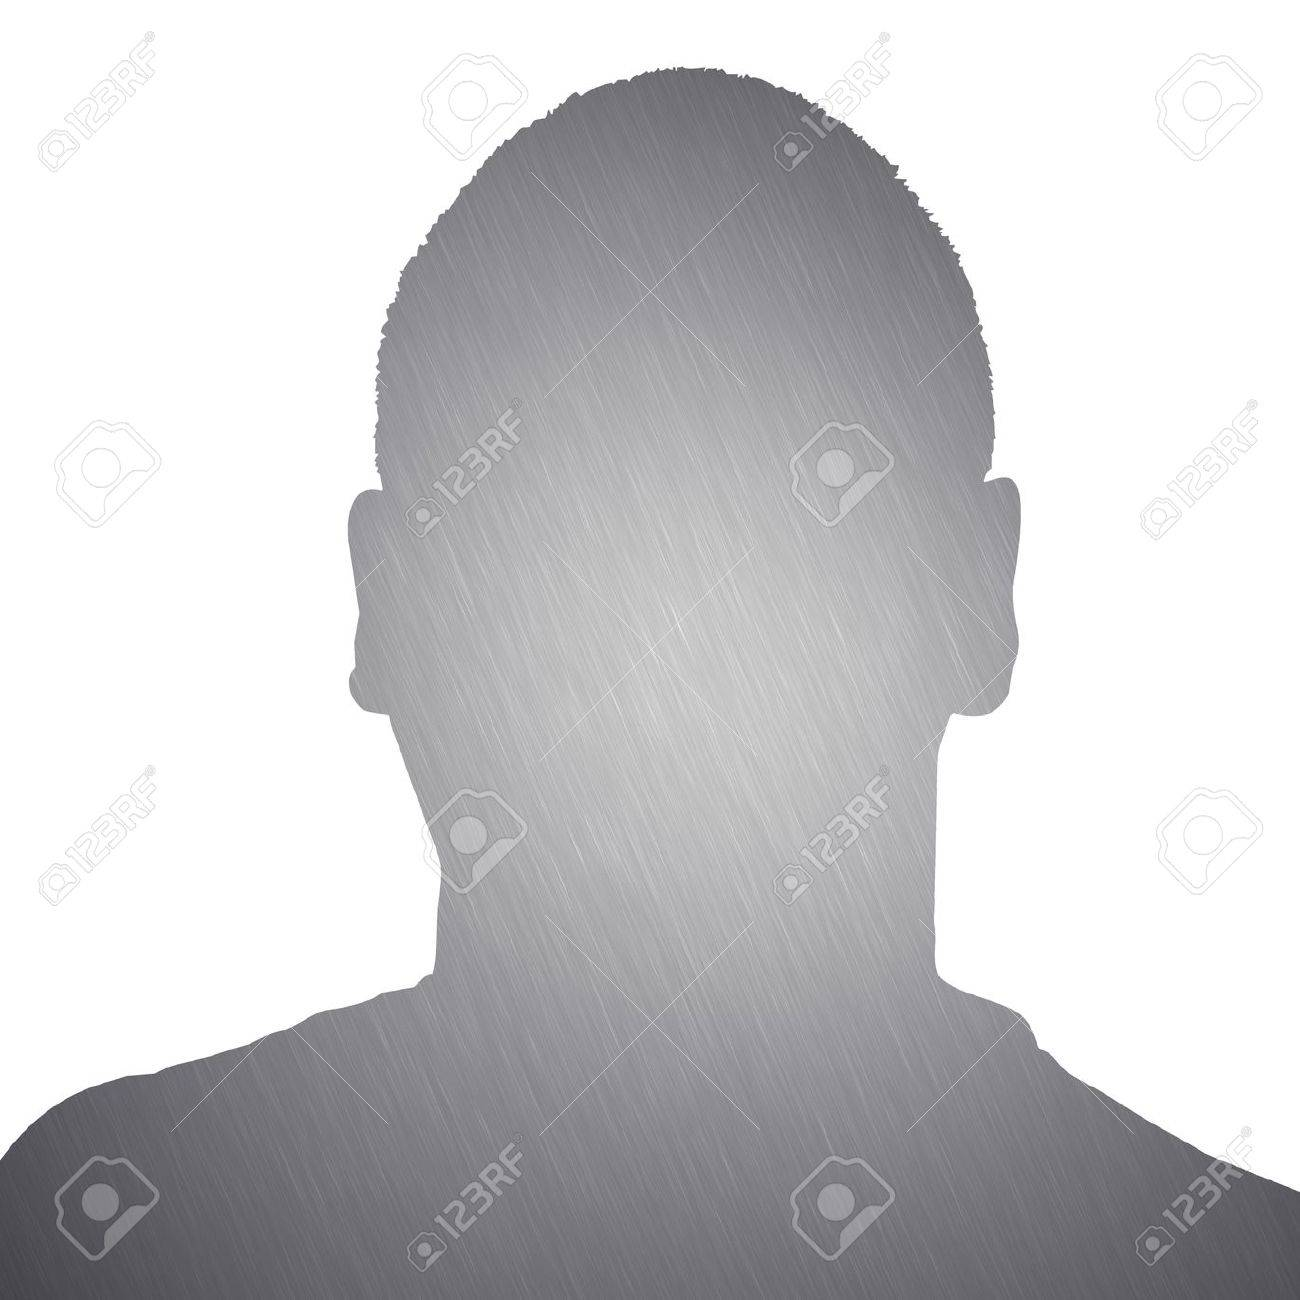 Illustration of a young man with brushed aluminum texture isolated over a white background. Stock Illustration - 19225661